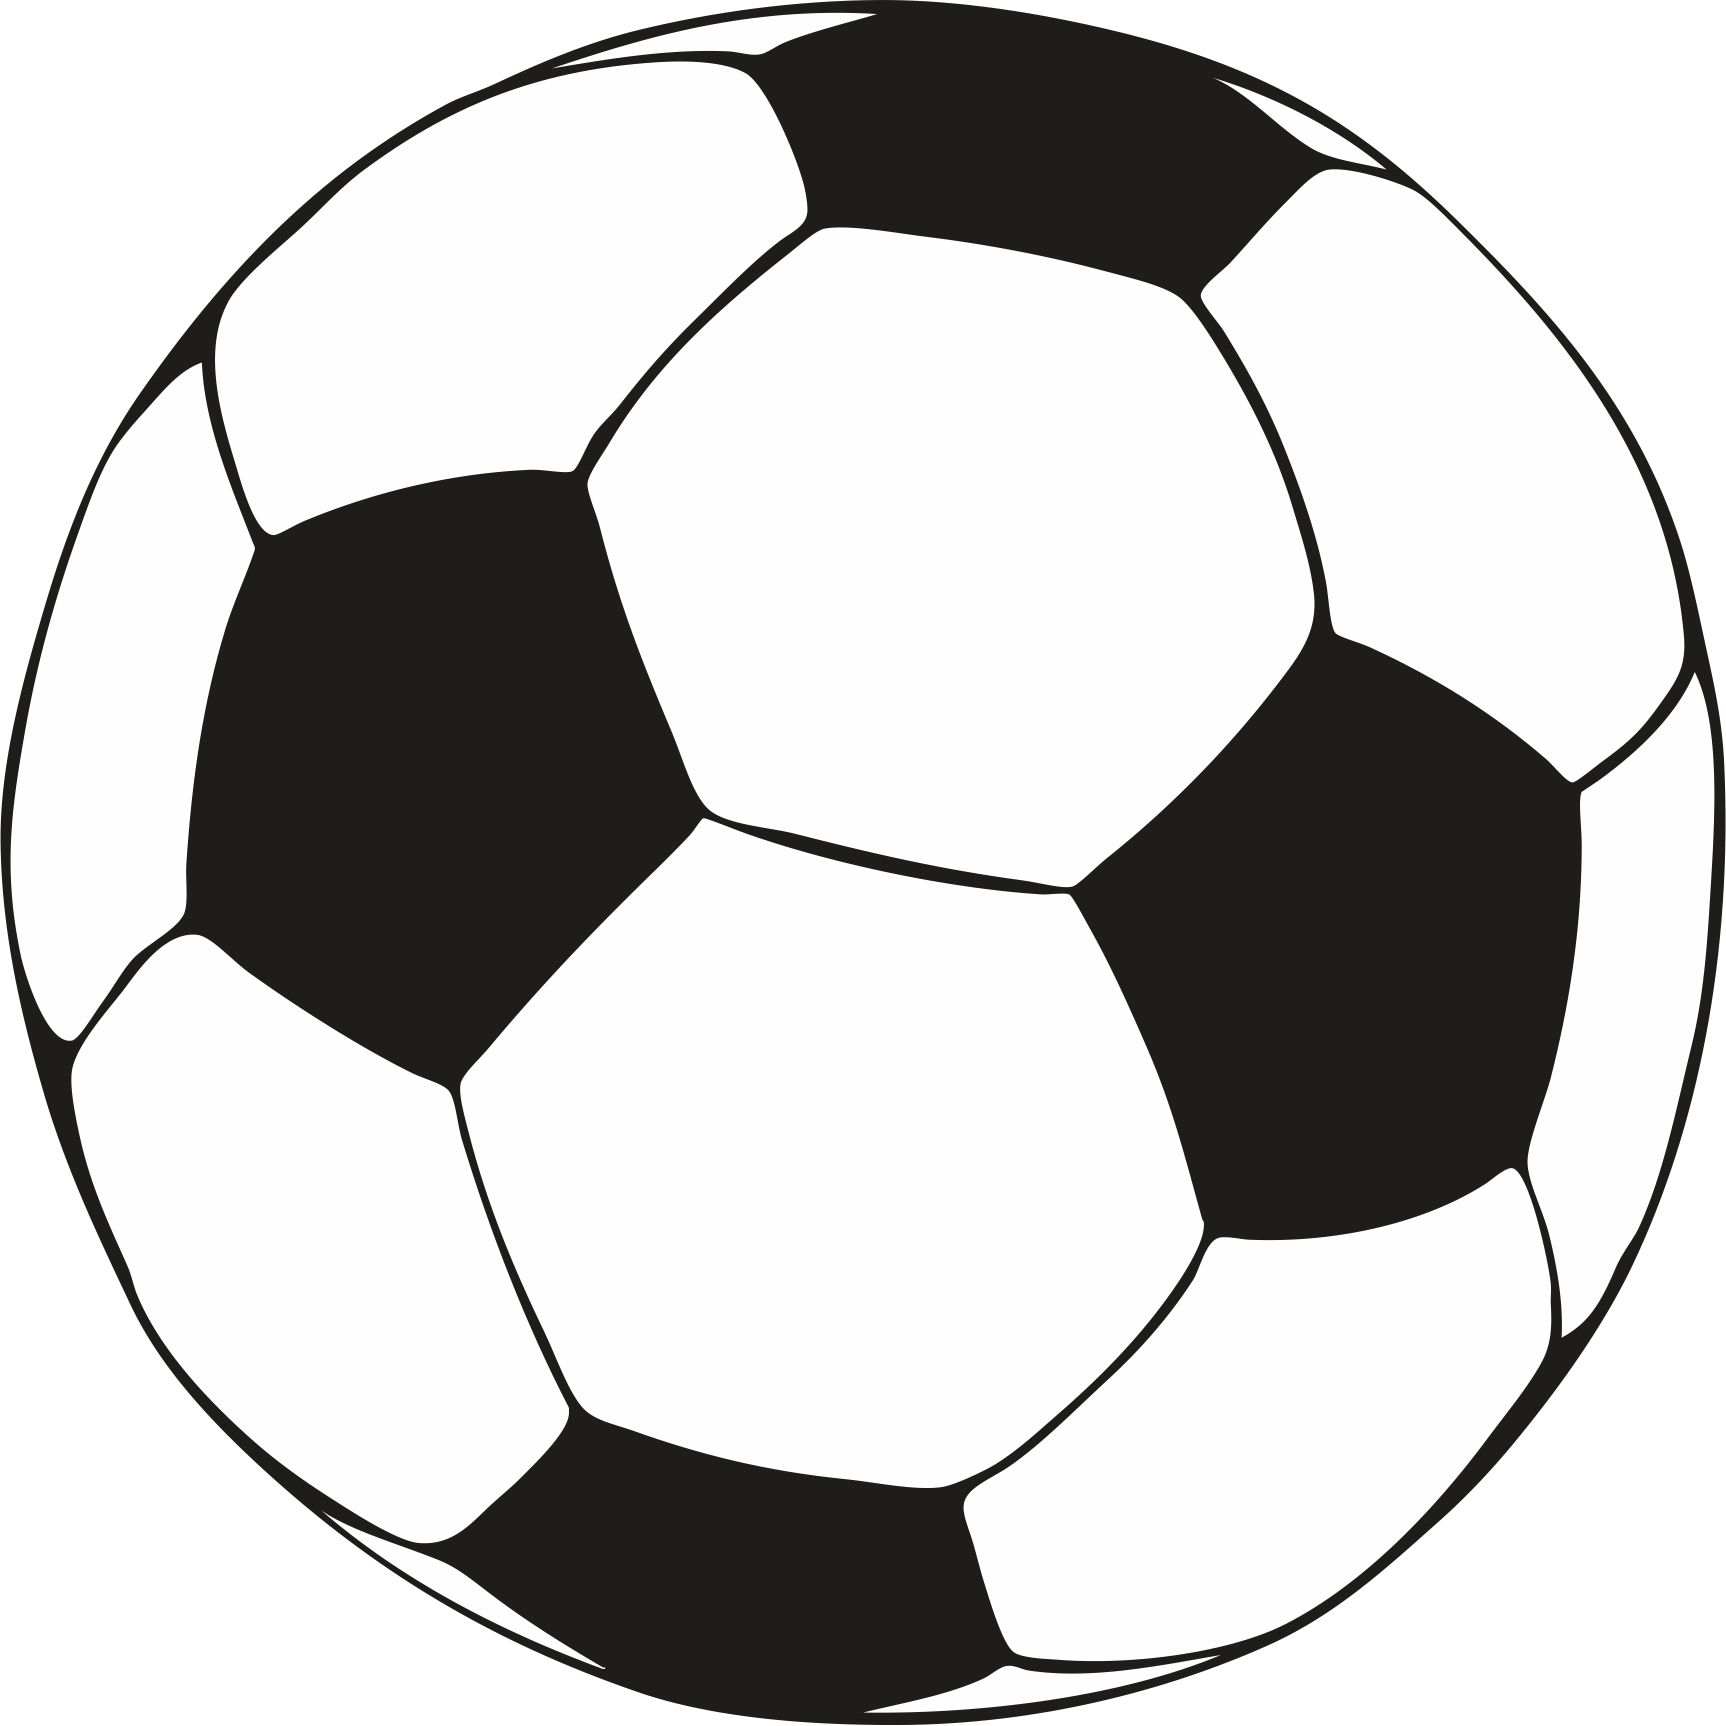 Soccer ball coloring pages download